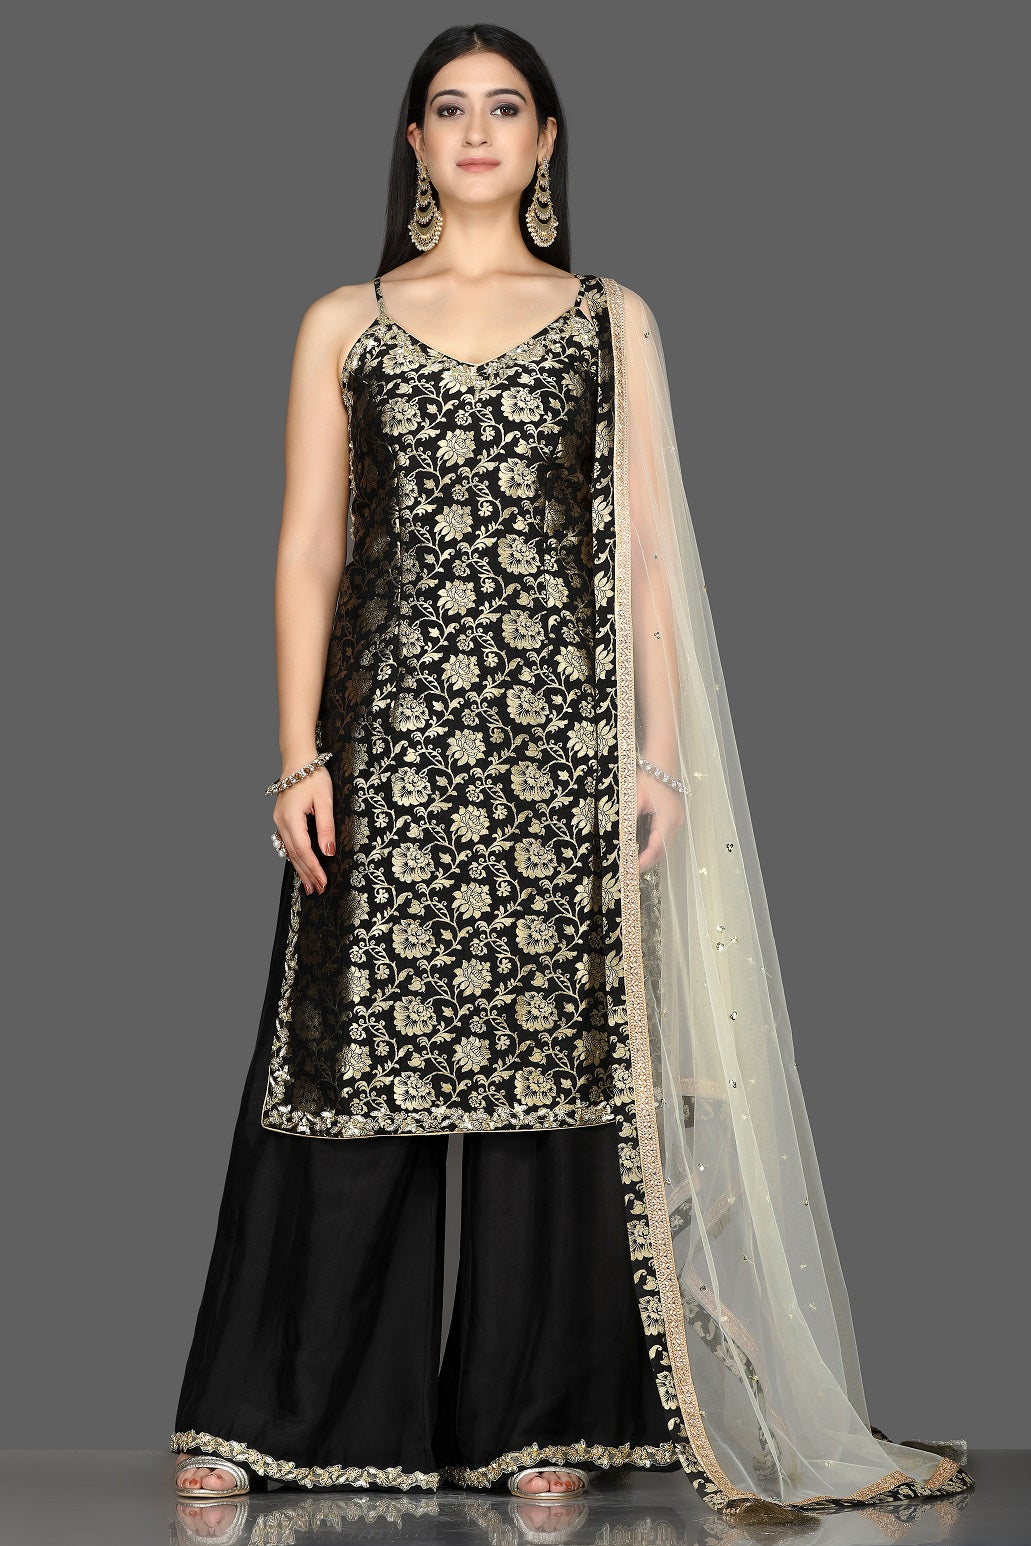 Shop stunning black embroidered Banarasi kurta online in USA with crepe palazzo. Flaunt ethnic fashion with exquisite designer lehenga, Indian wedding dresses, Anarkali suits from Pure Elegance Indian fashion boutique in USA.-full view